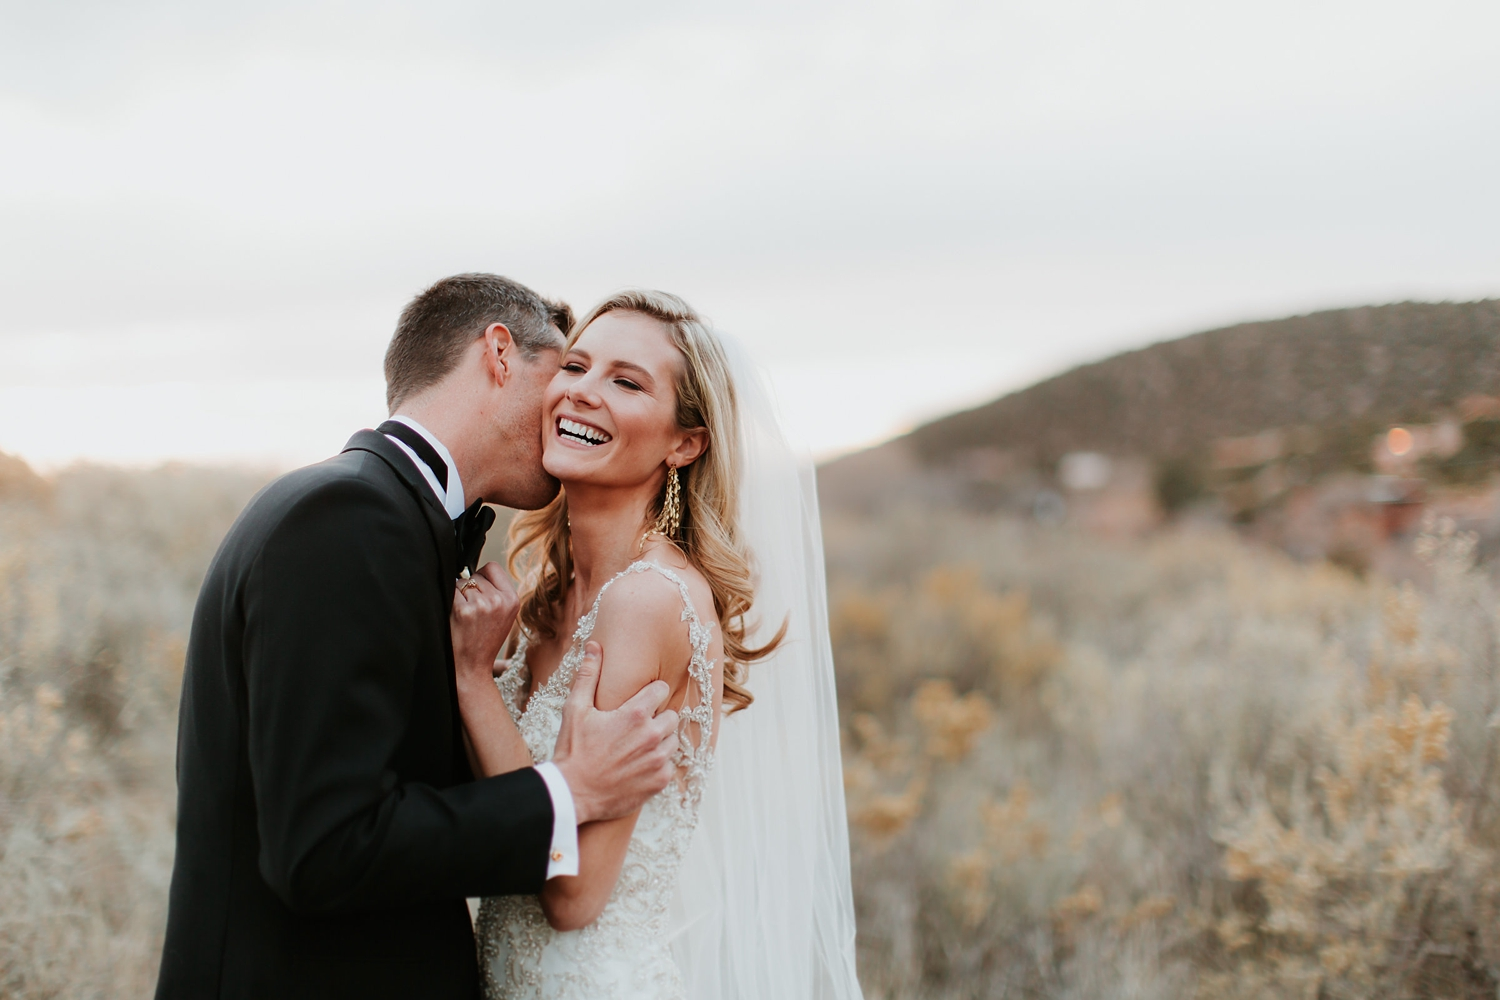 Alicia+lucia+photography+-+albuquerque+wedding+photographer+-+santa+fe+wedding+photography+-+new+mexico+wedding+photographer+-+la+fonda+wedding+-+la+fonda+winter+wedding_0087.jpg